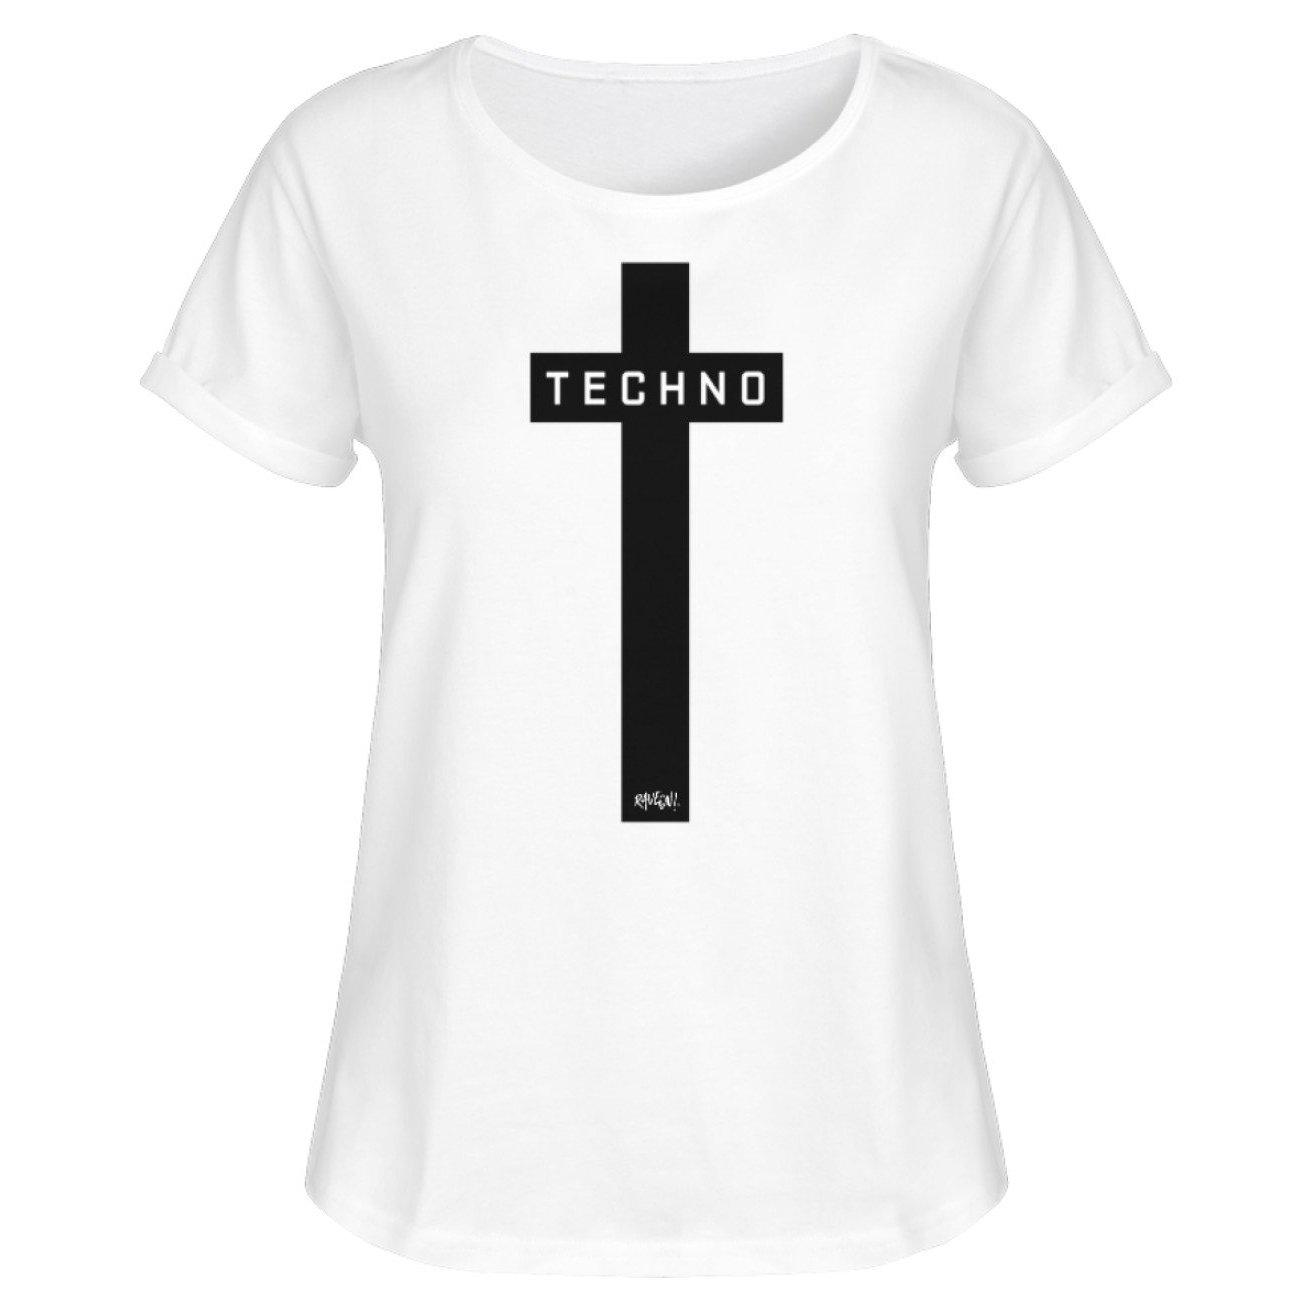 TECHNO Kreuz Black - Rave On!® - Damen RollUp Shirt Women Rollup Shirt White / S - Rave On!® der Club & Techno Szene Shop für Coole Junge Mode Streetwear Style & Fashion Outfits + Sexy Festival 420 Stuff